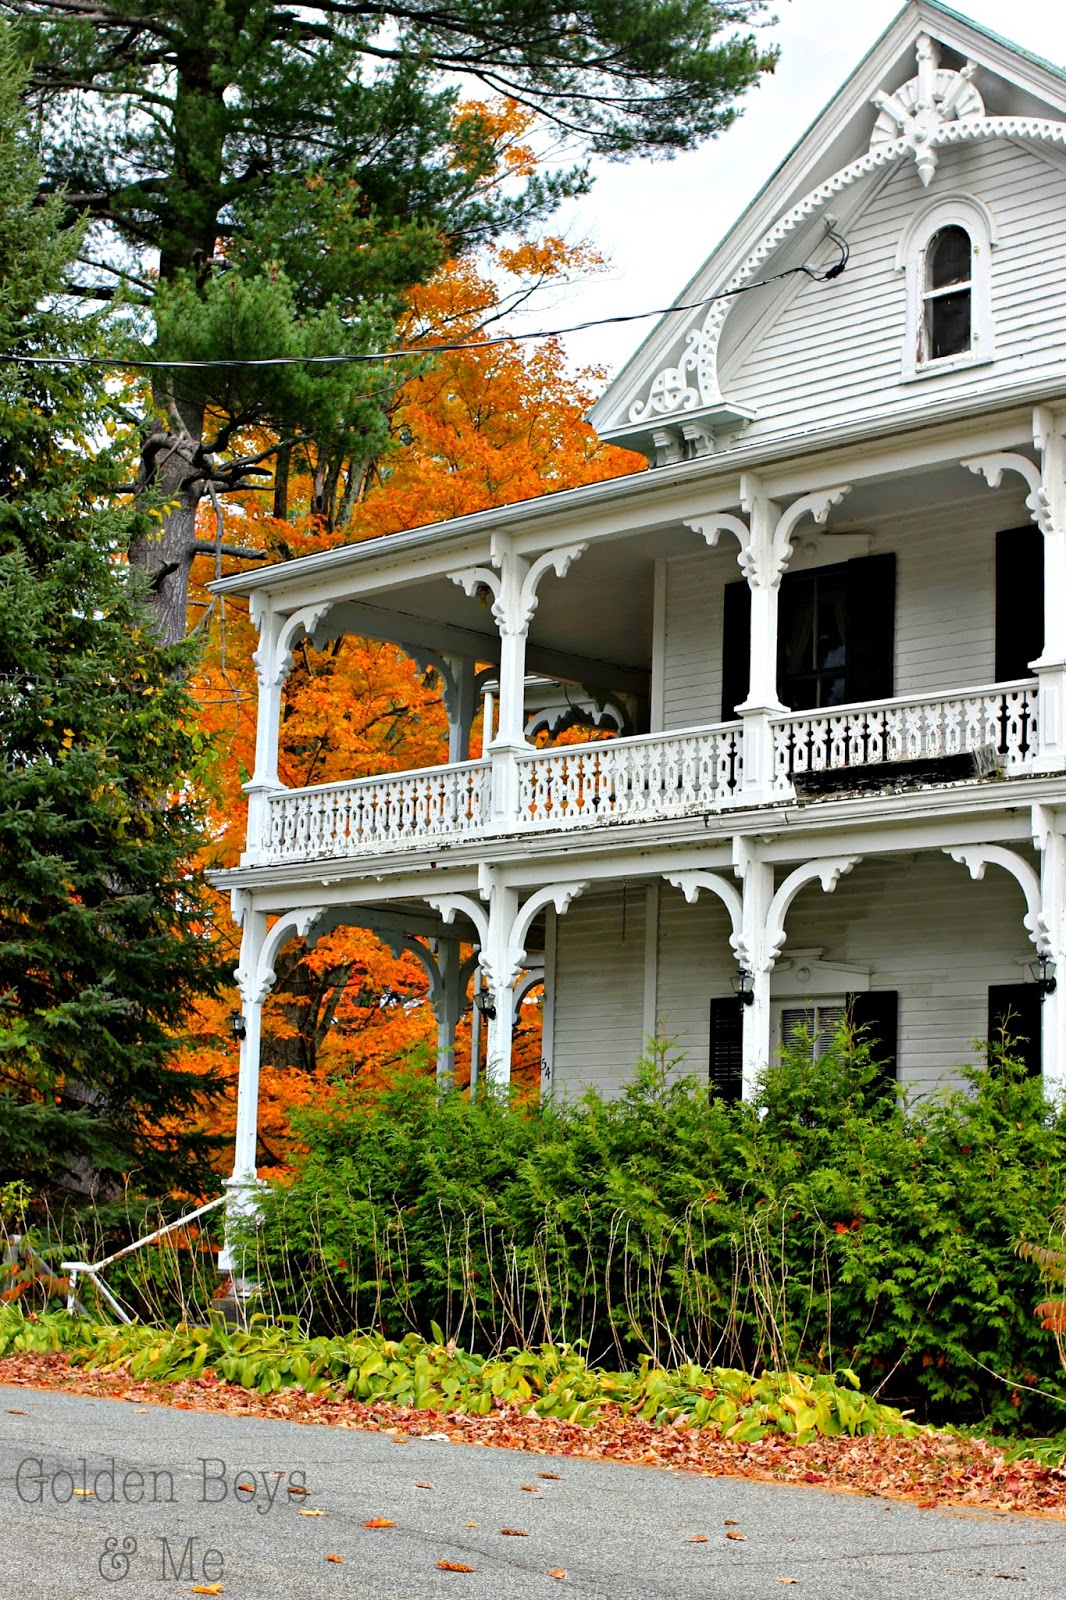 Woods Lodge in Schroon Lake, NY with fall foliage-www.goldenboysandme.com